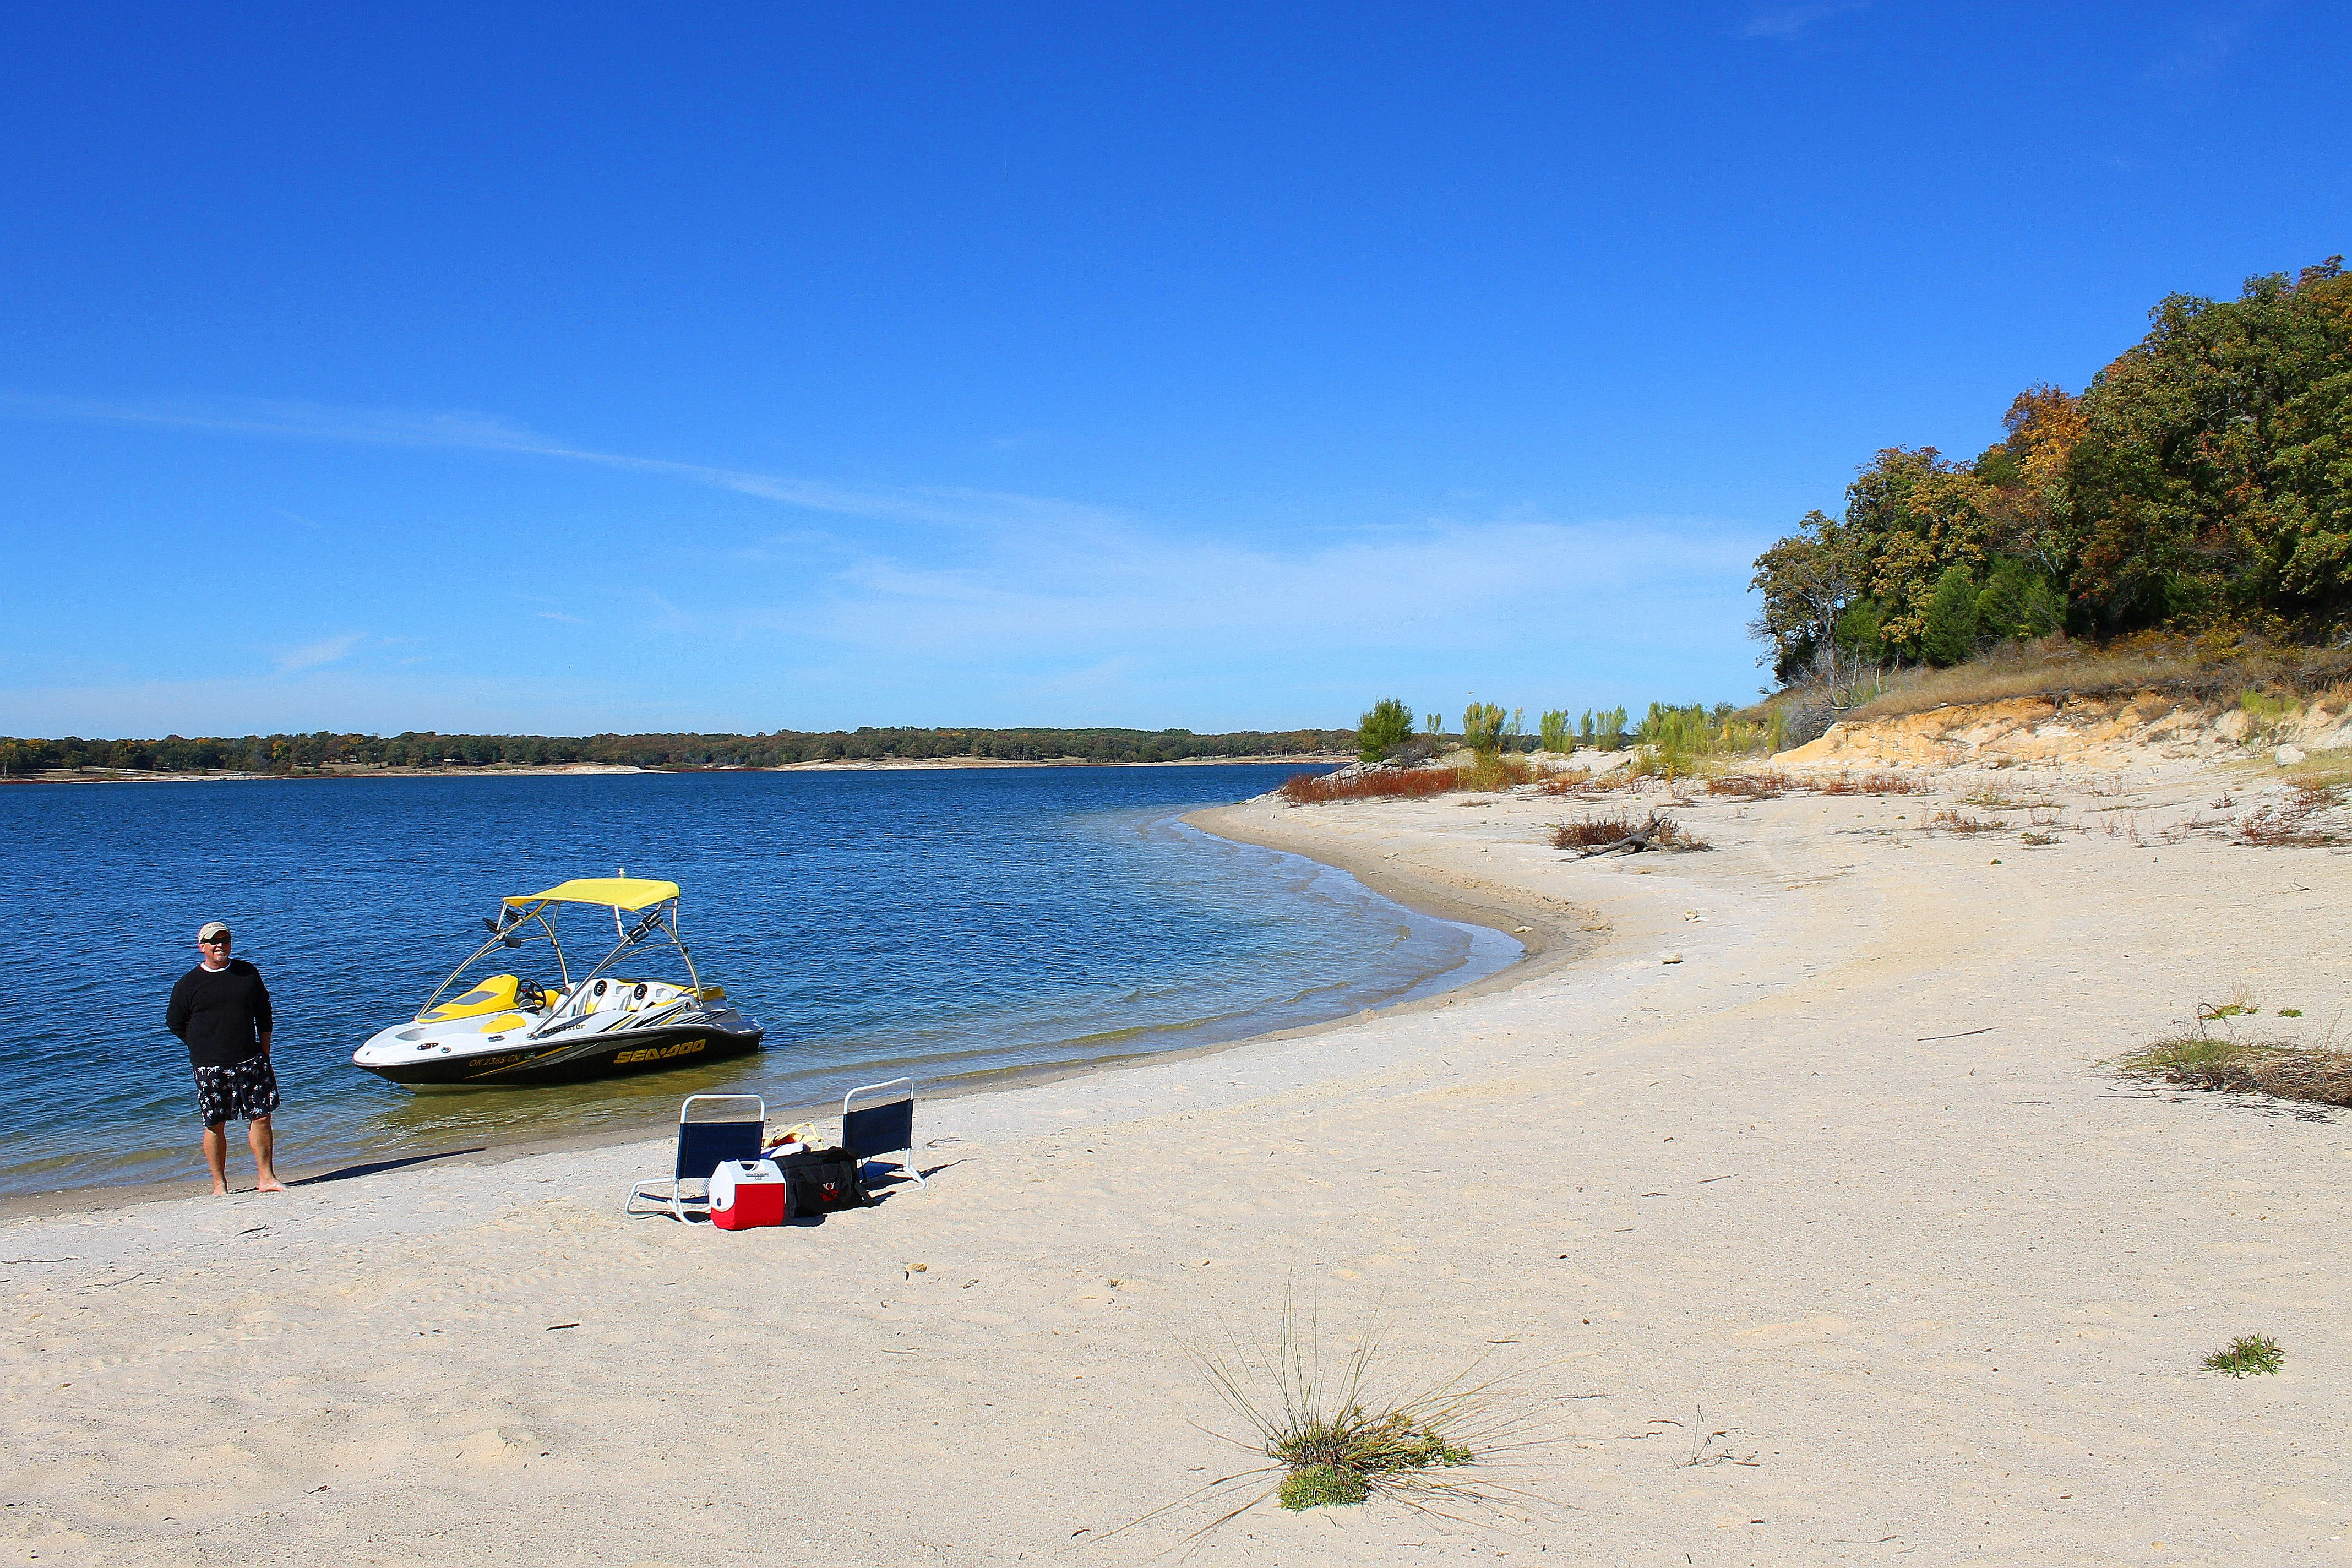 There Are Truly Beaches Like This On Lake Texoma Only An Hour North Of Dallas Tx Named To Top 10 Places Live In The U S 2017